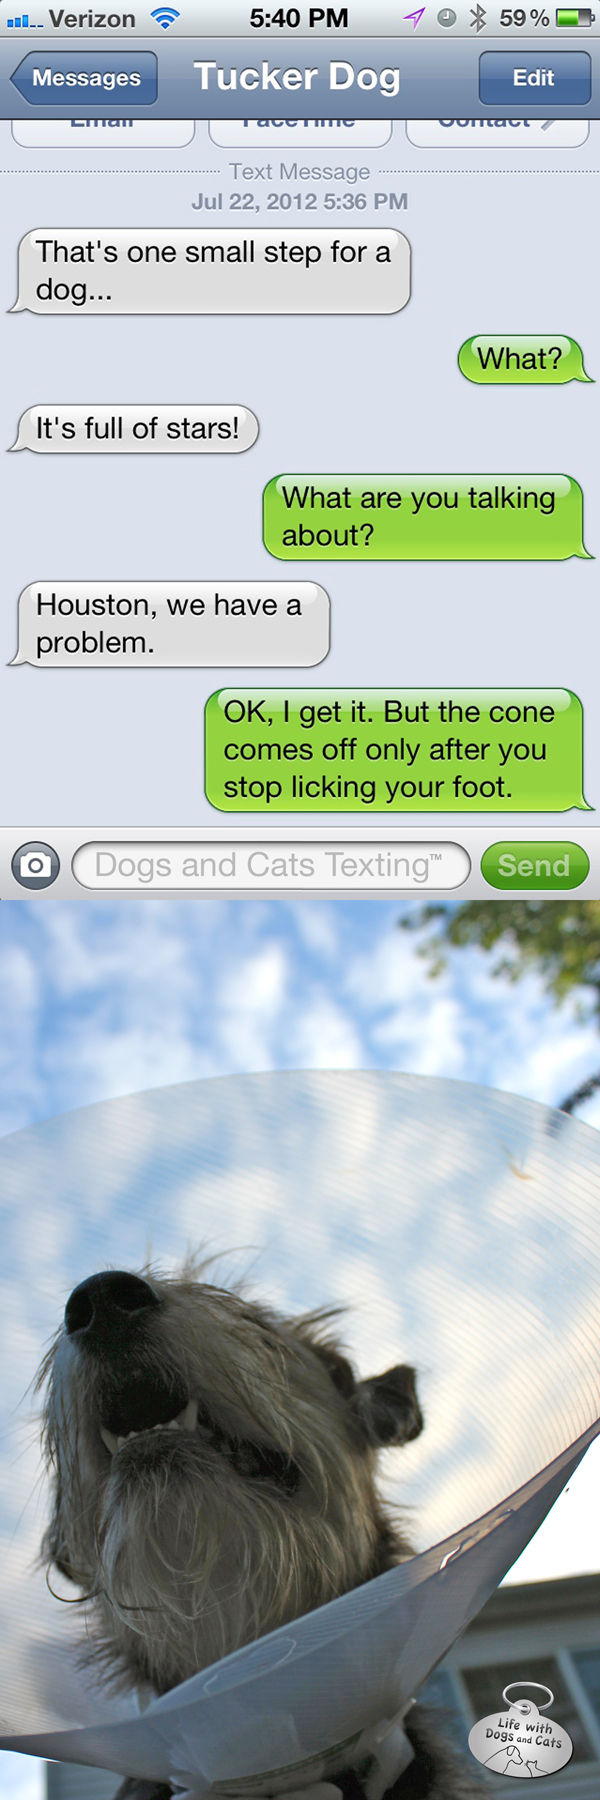 Text from Dog: Houston, we have a problem